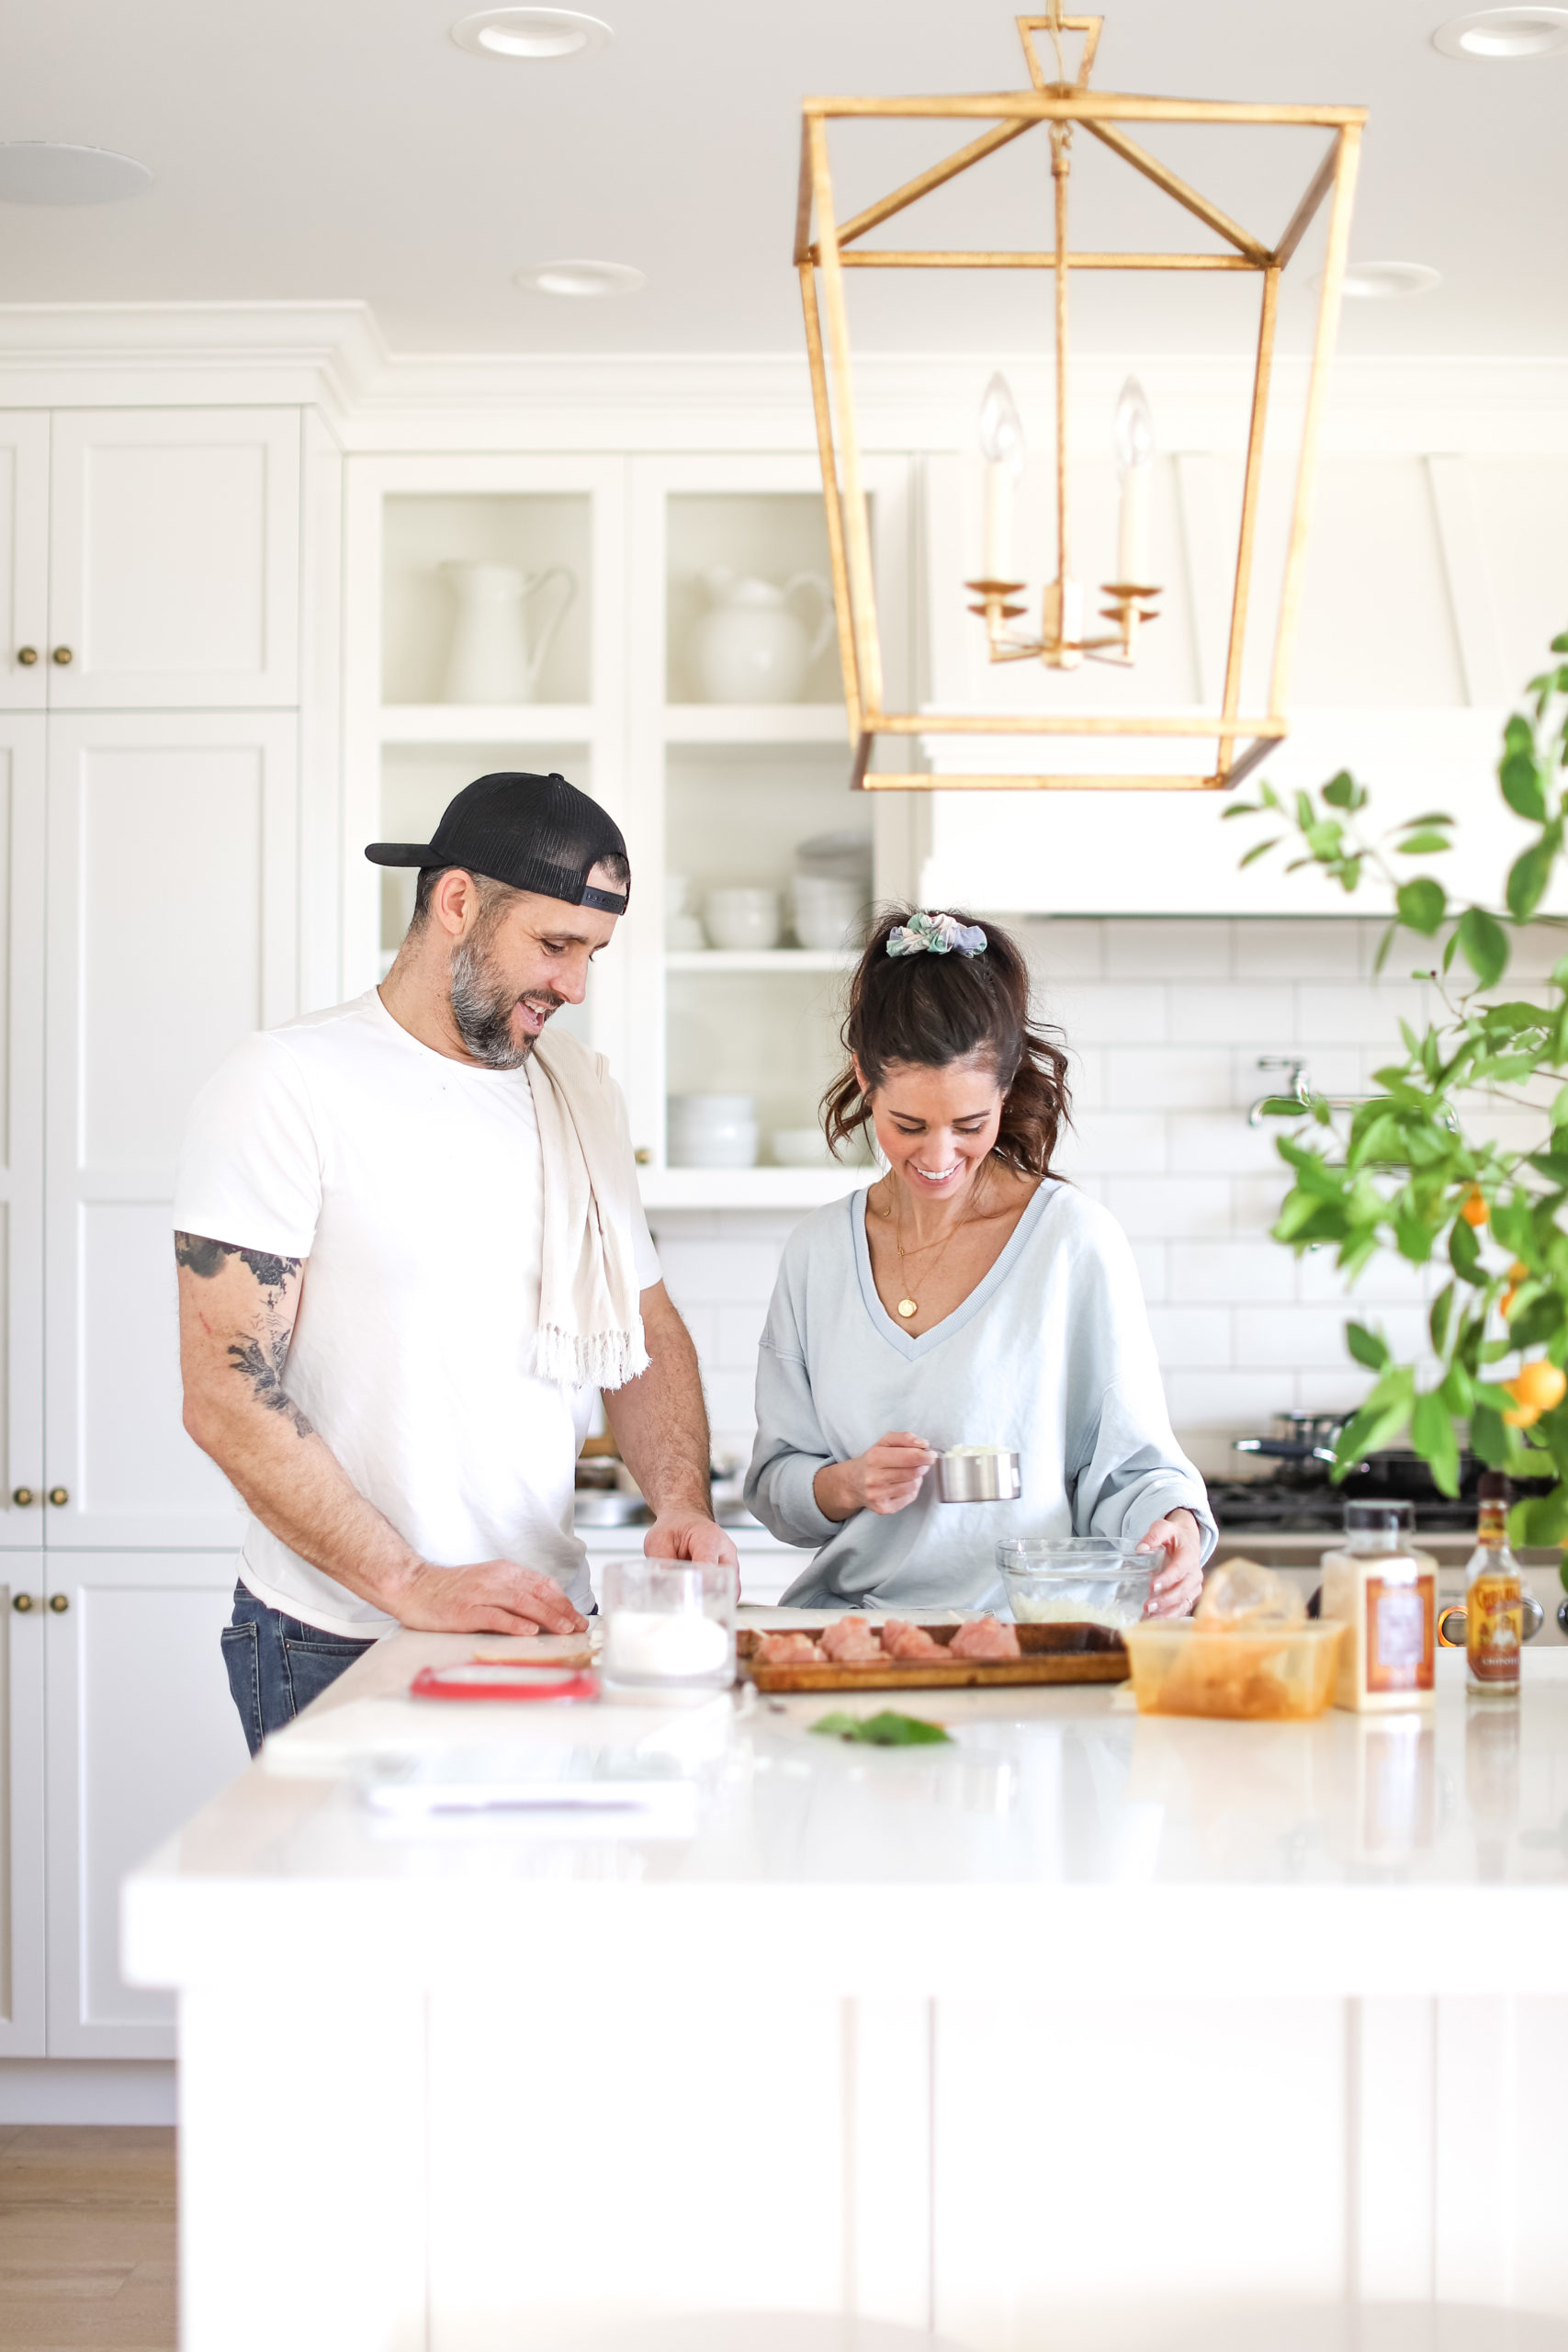 husband and wife cooking homemade chicken parmesan in kitchen together